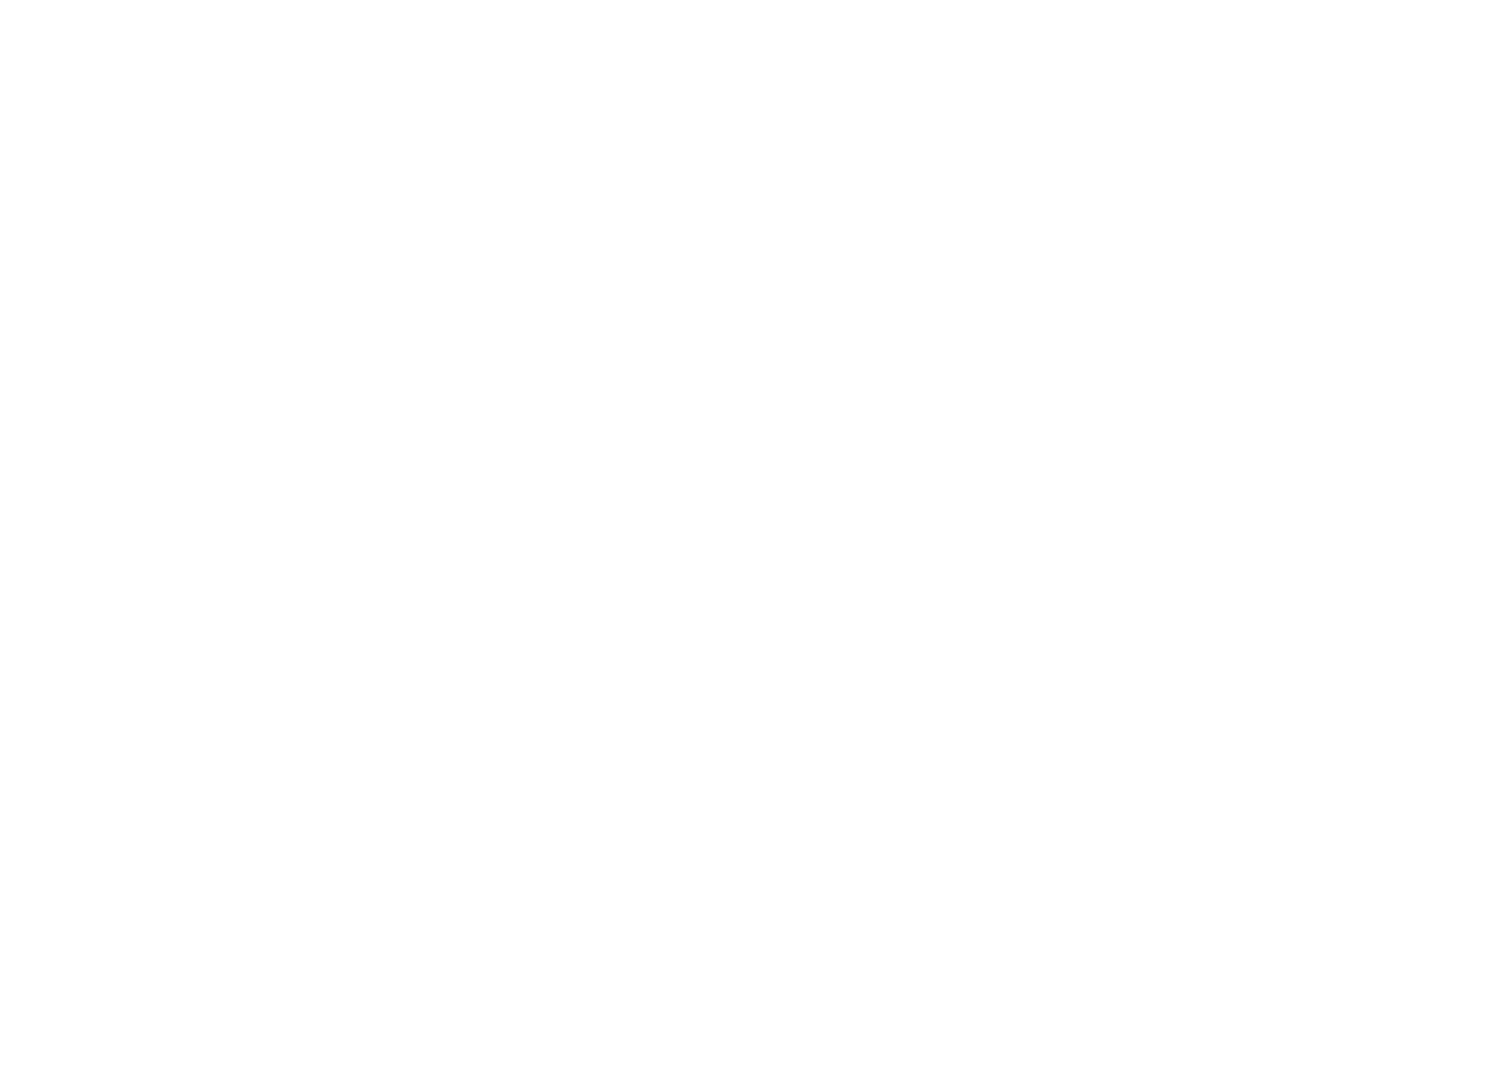 True North Event Co.